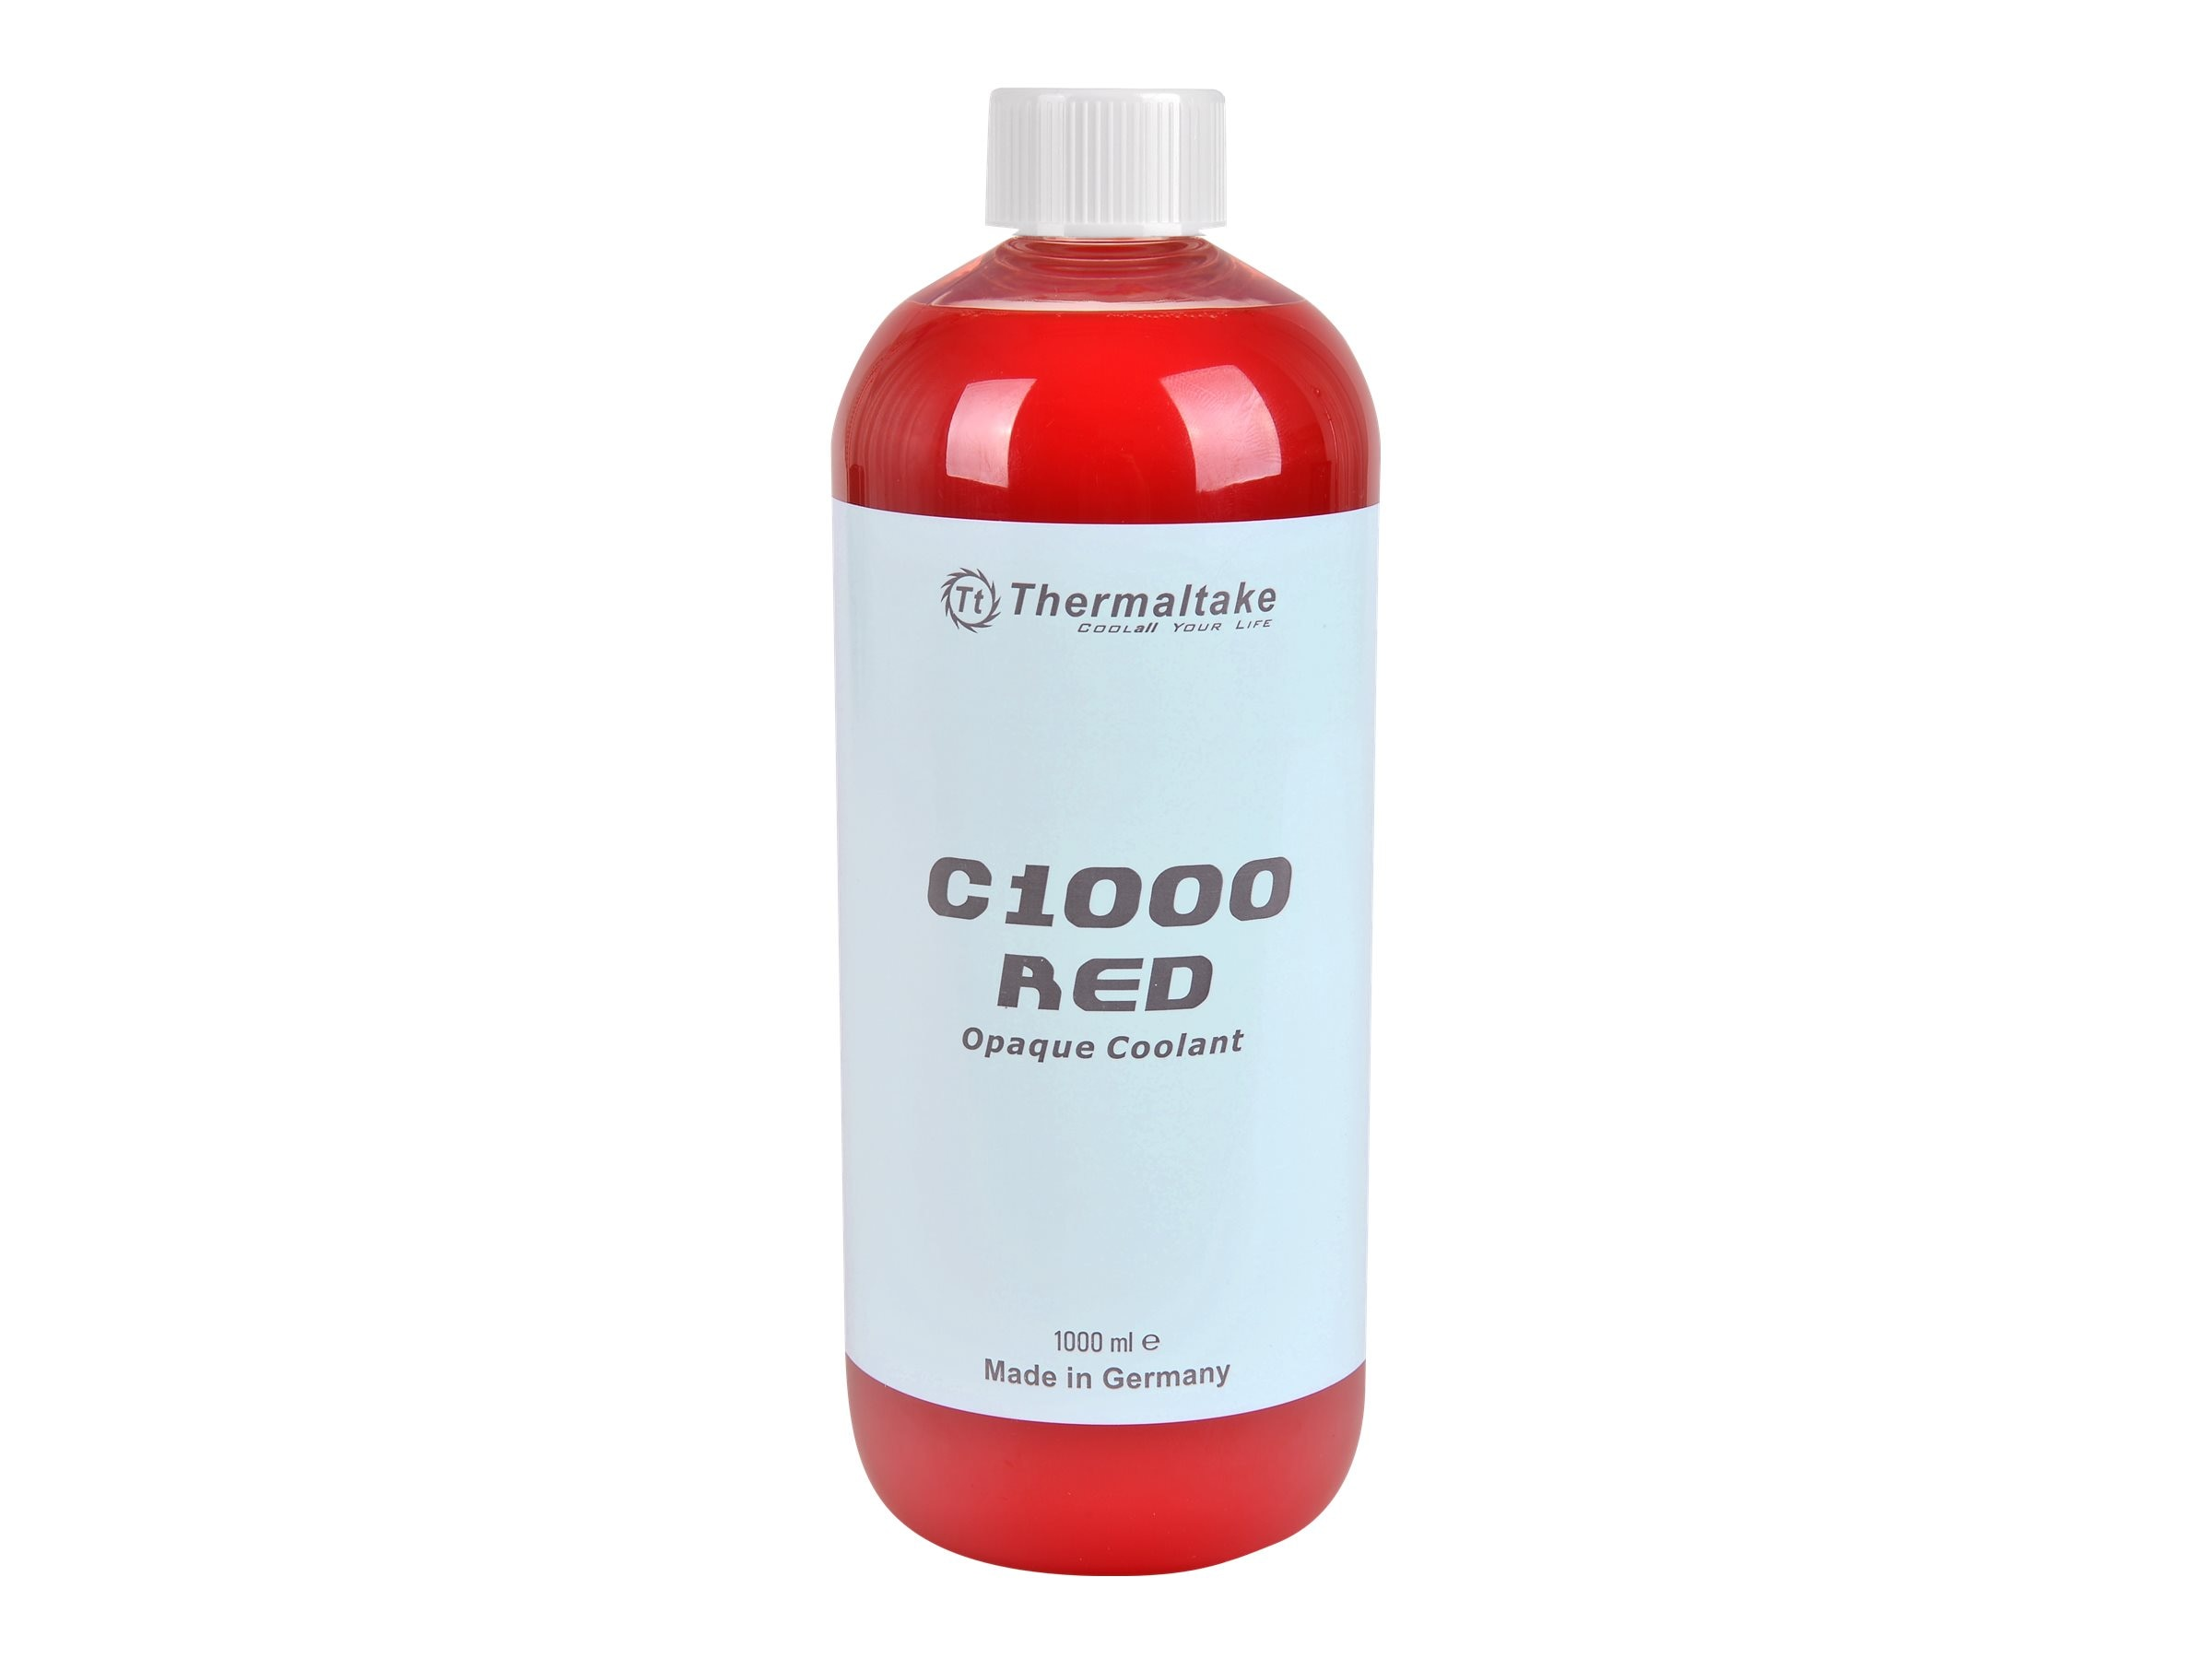 Thermaltake C1000 Opaque Liquid Coolant, Red